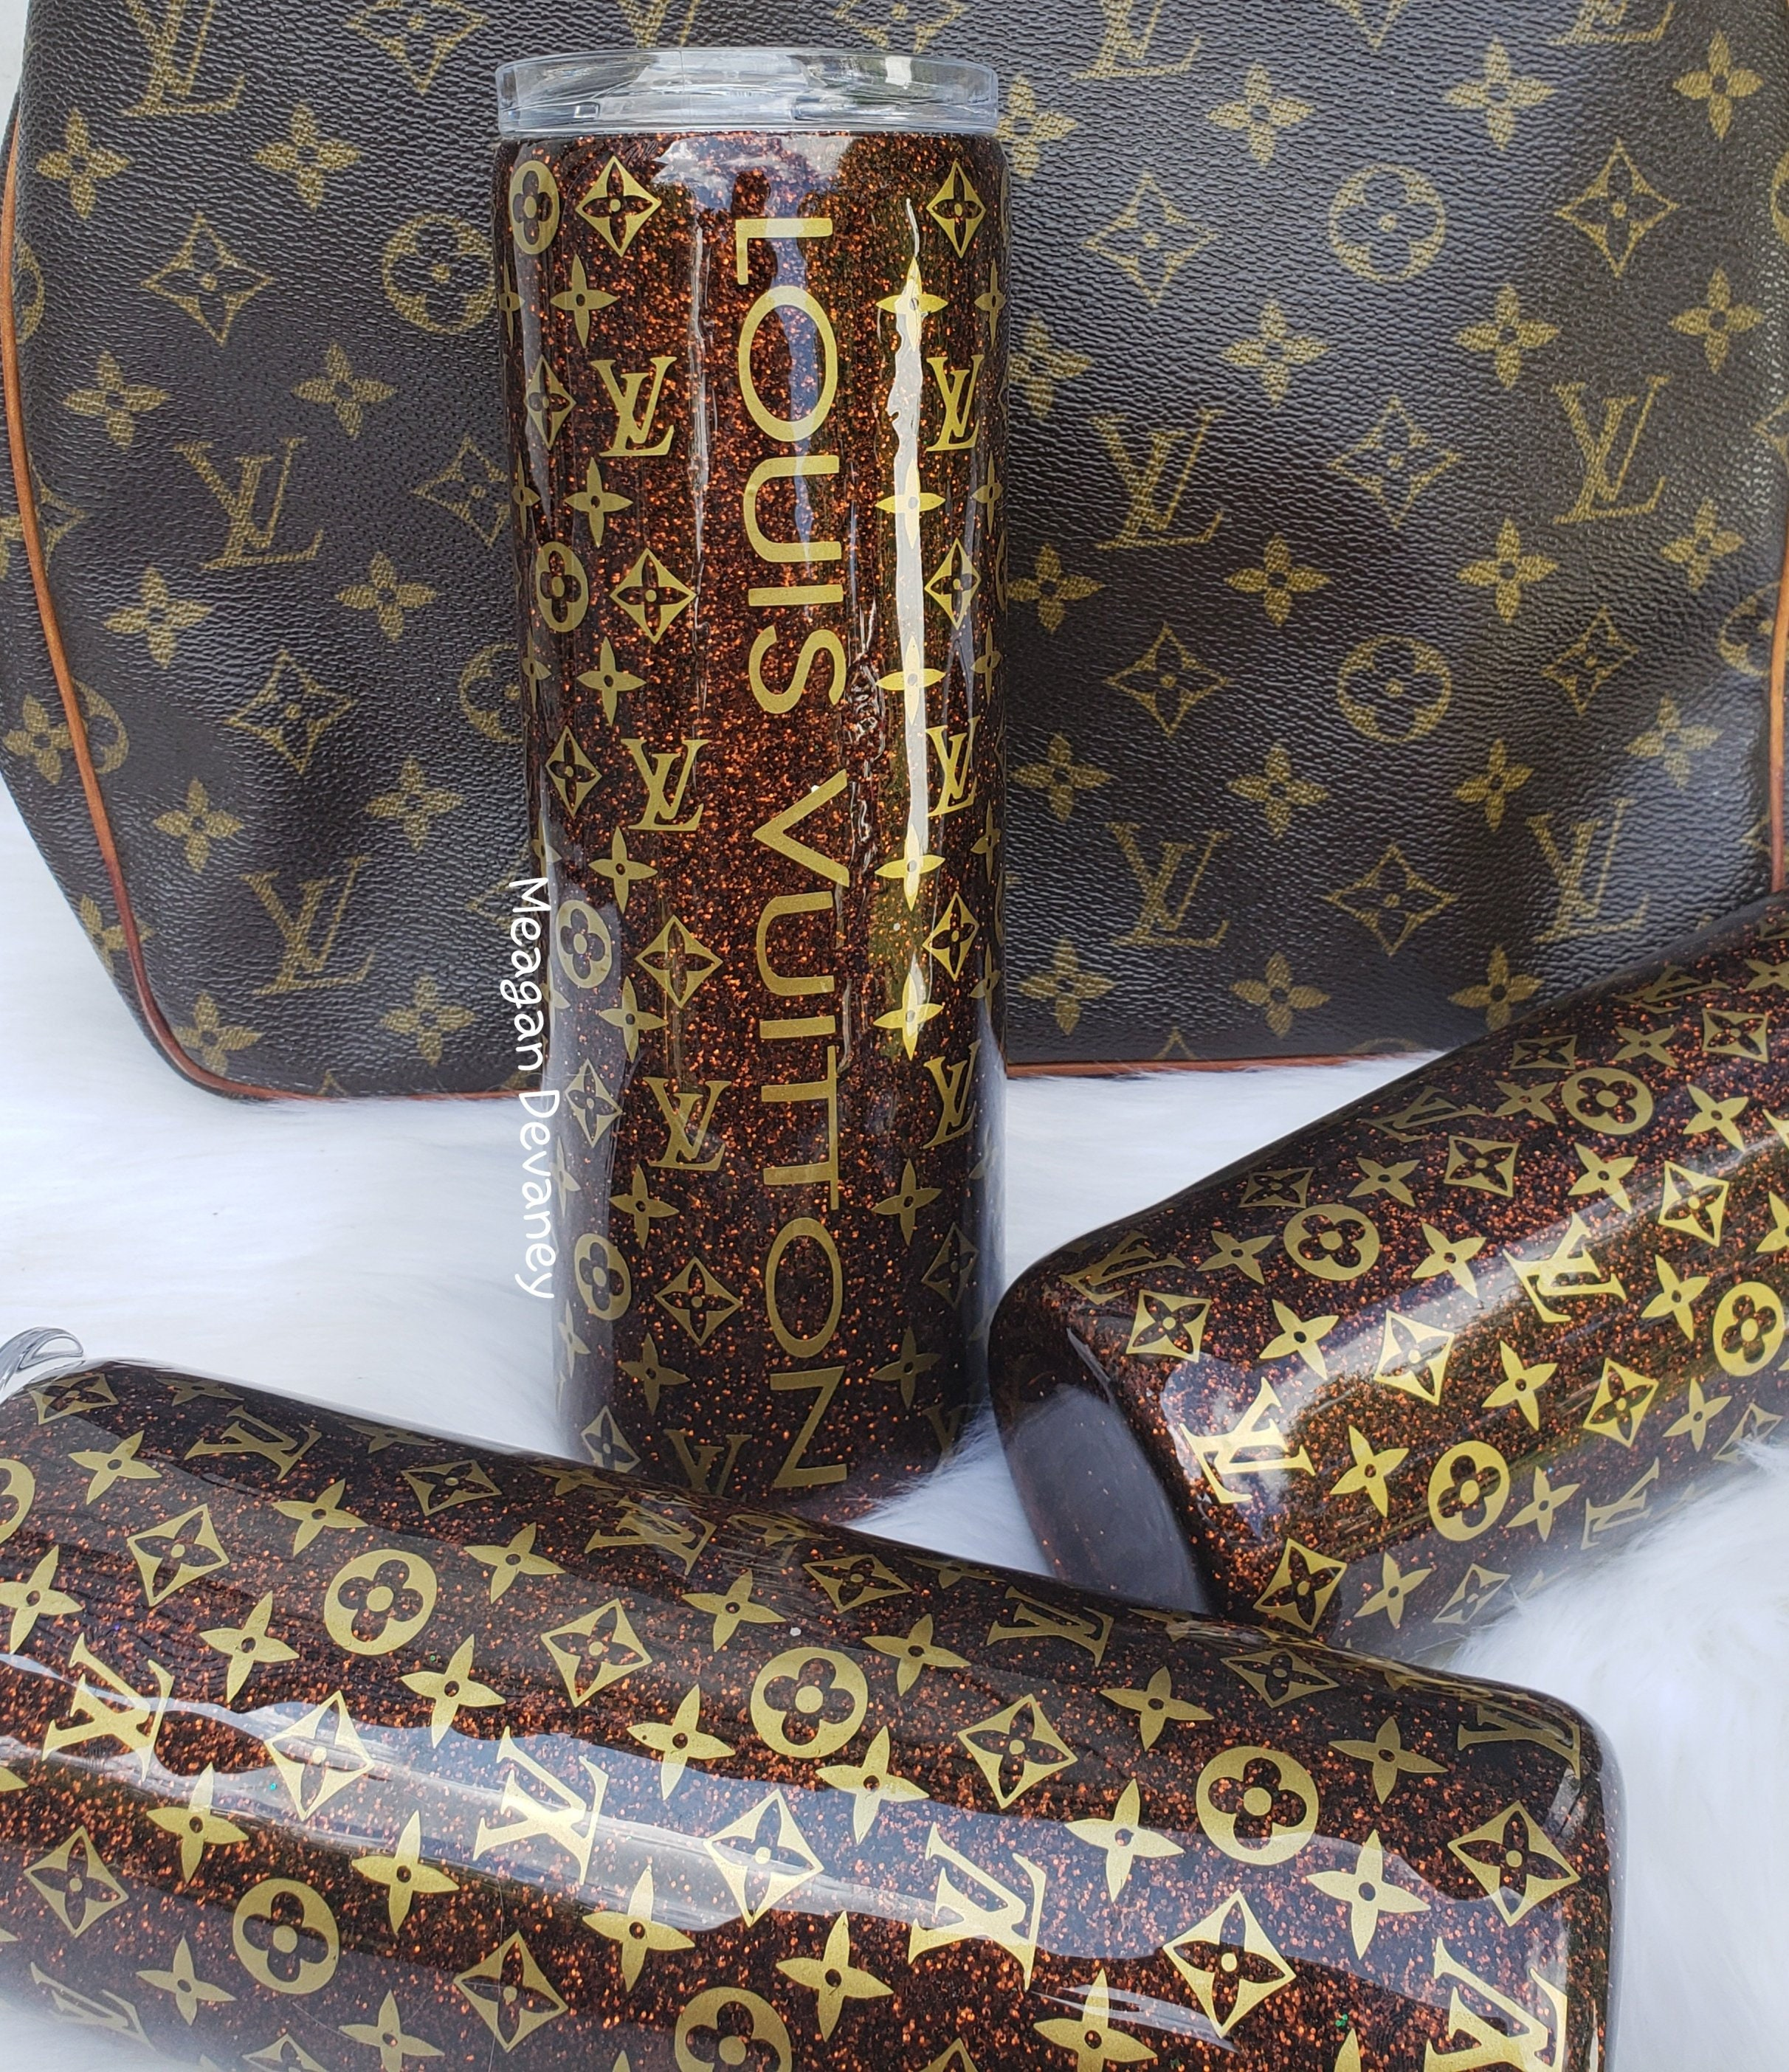 c597d5d0d17 LV Louis Vuitton Inspired Glittered tumbler, stainless steel insulated cup  lid and straw, Hogg/Yeti, Christmas Birthday Designer Purse Gift